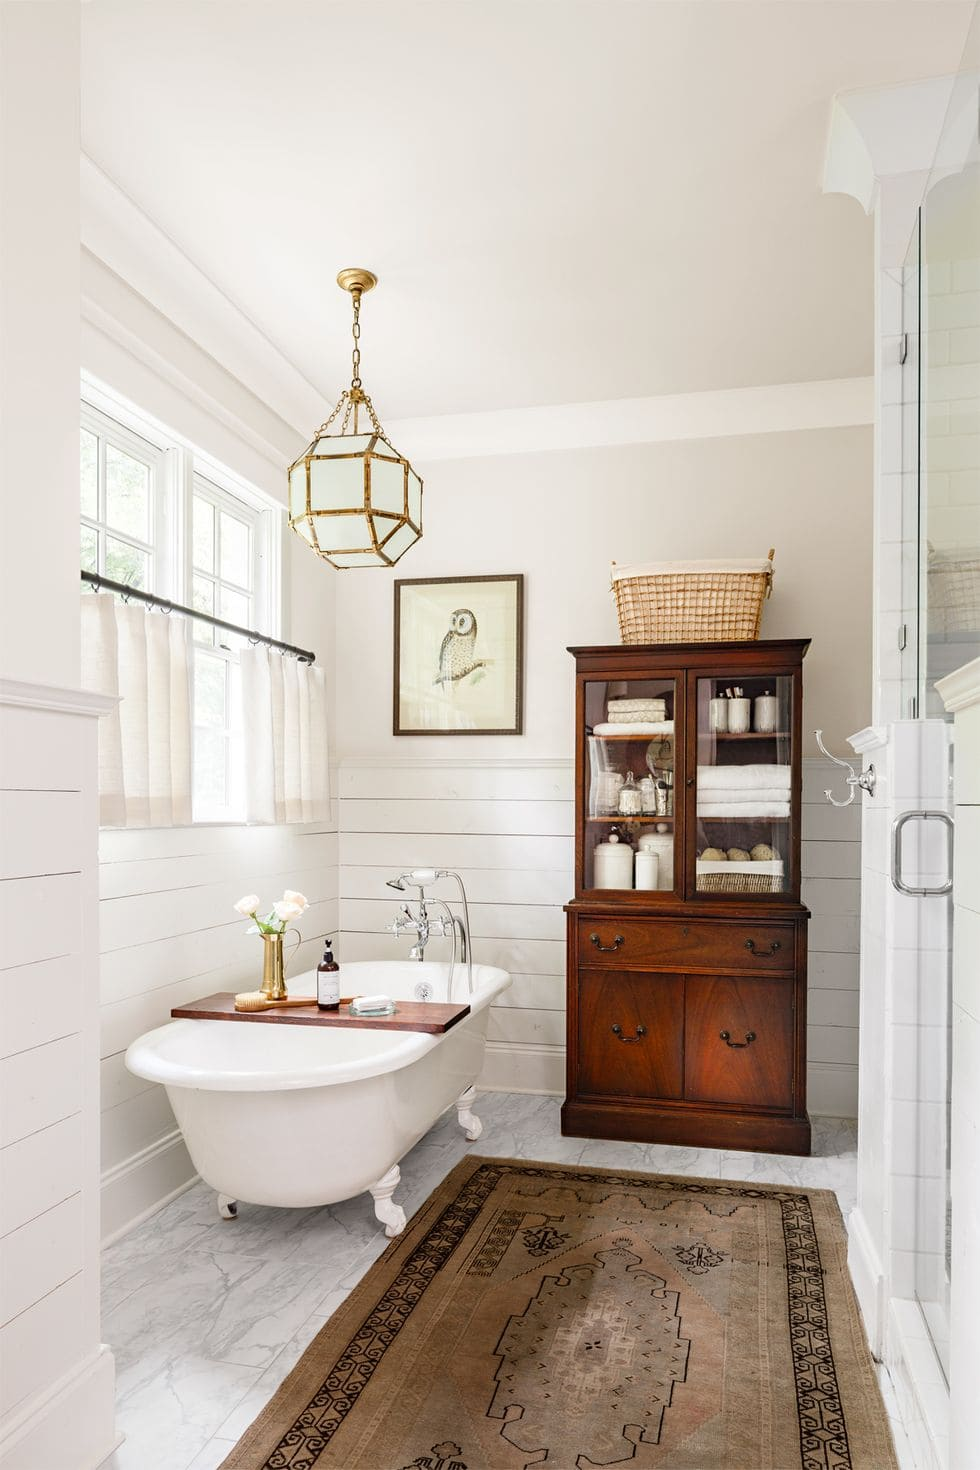 marble floors, antique wood cabinet, and clawfoot tub